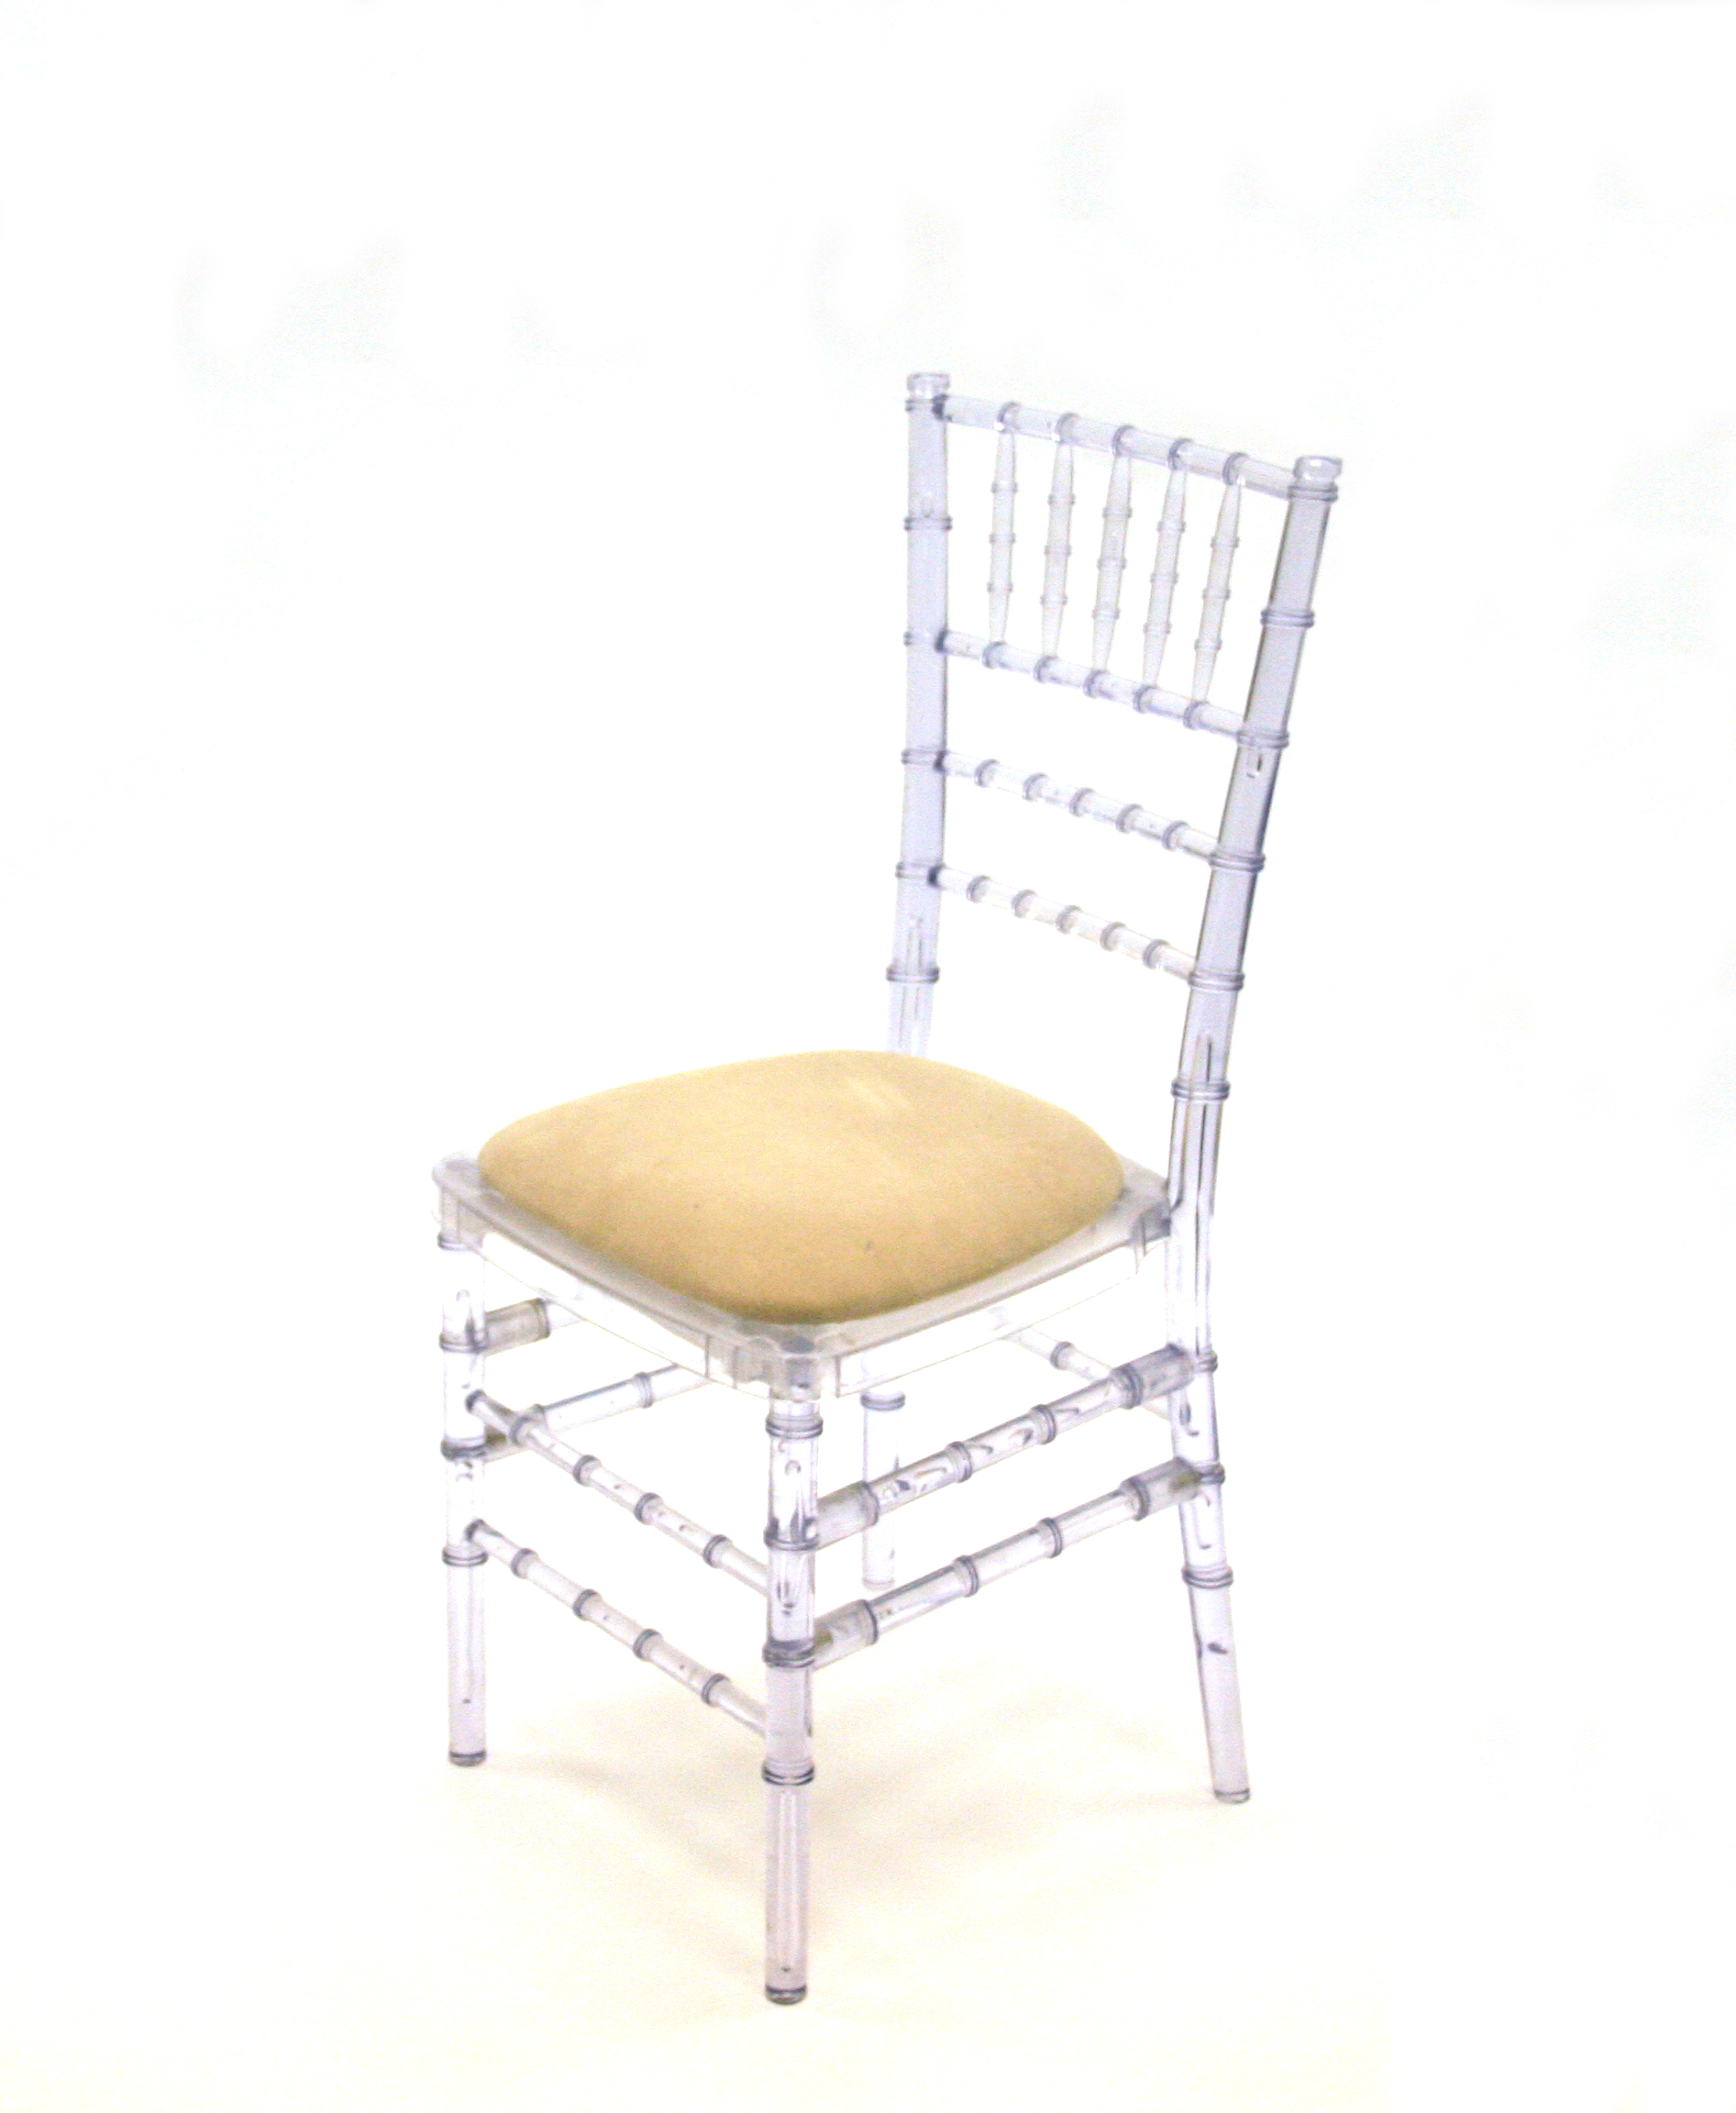 Crystal Resin Ice Krystal Chiavari Chairs - BE Event Hire